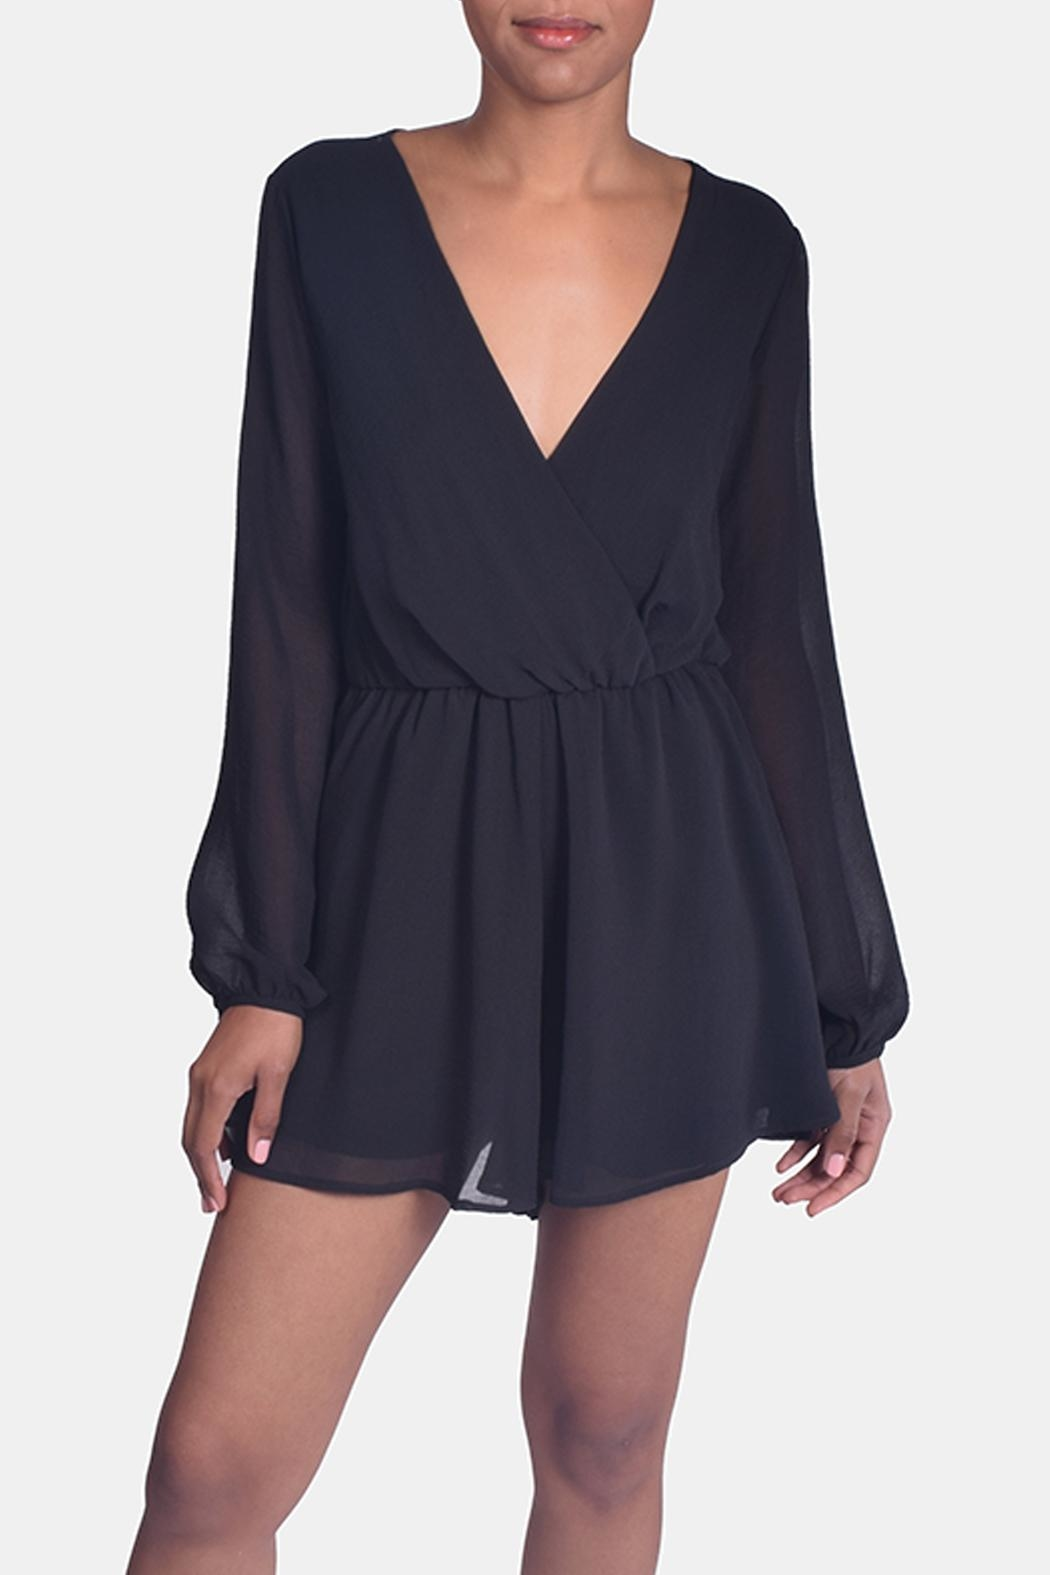 Final Touch Black Chiffon Romper - Front Full Image